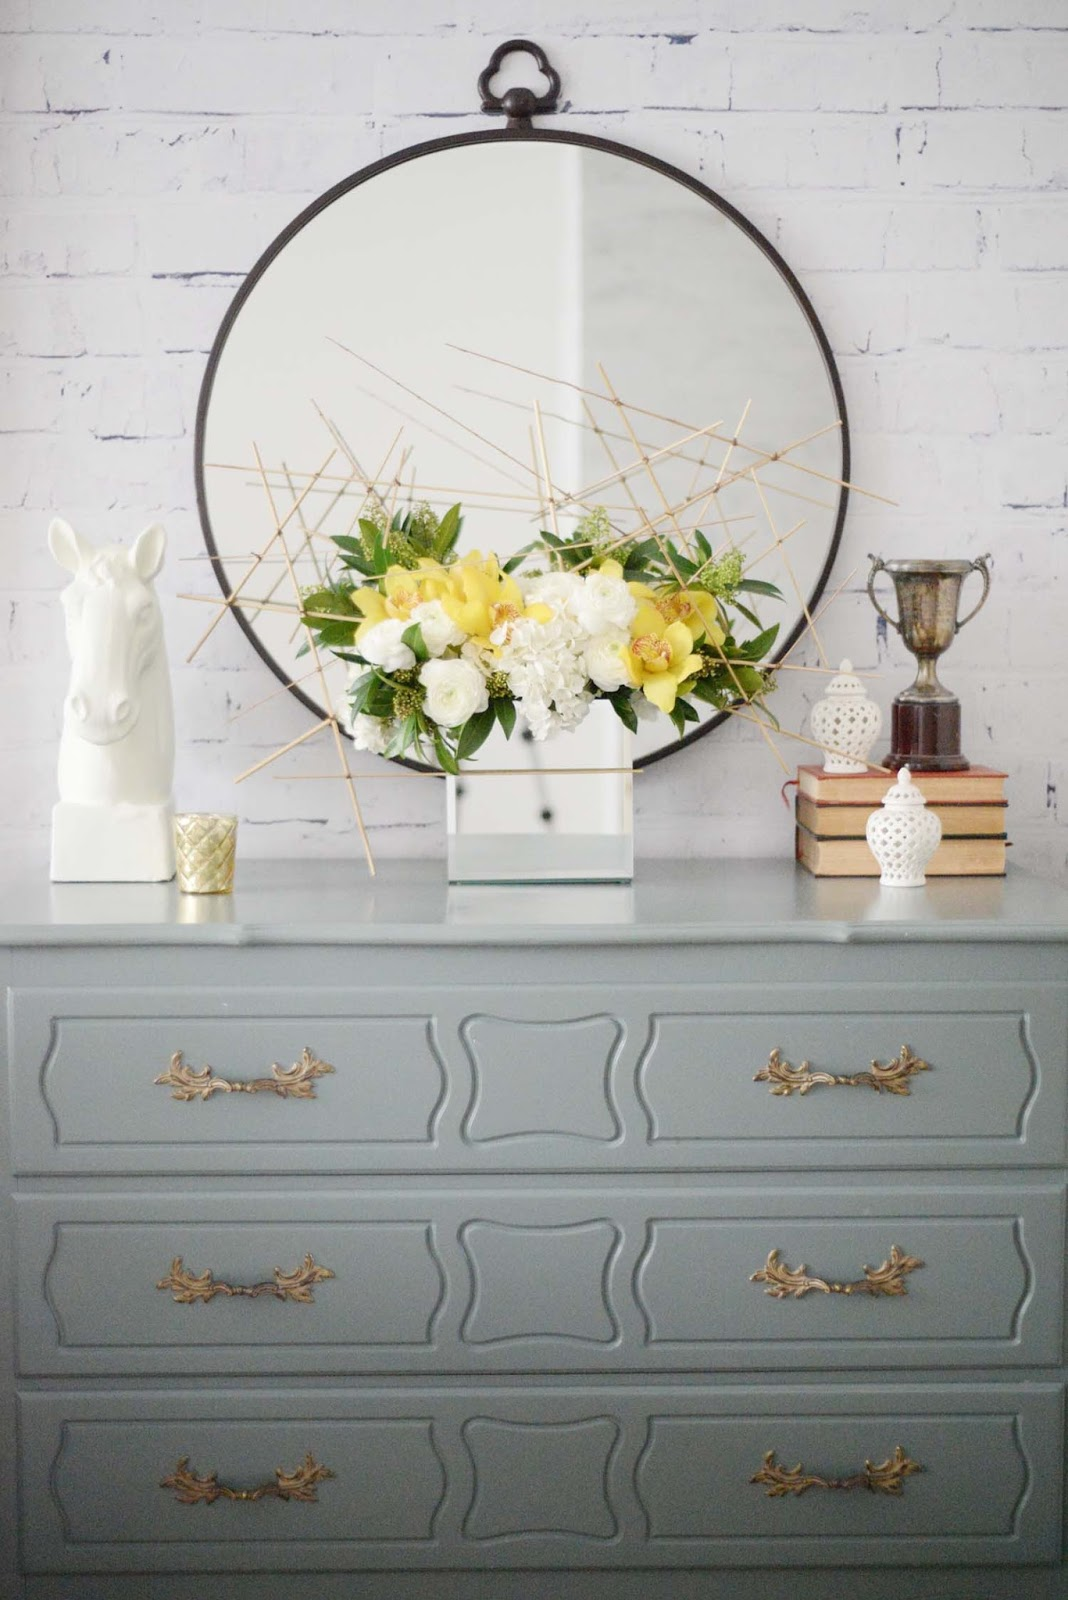 Wayfair Winter Refresh | Fresh Florals orchid hydrangea ranunculus reed | Round metal mirror | RamblingRenovators.ca